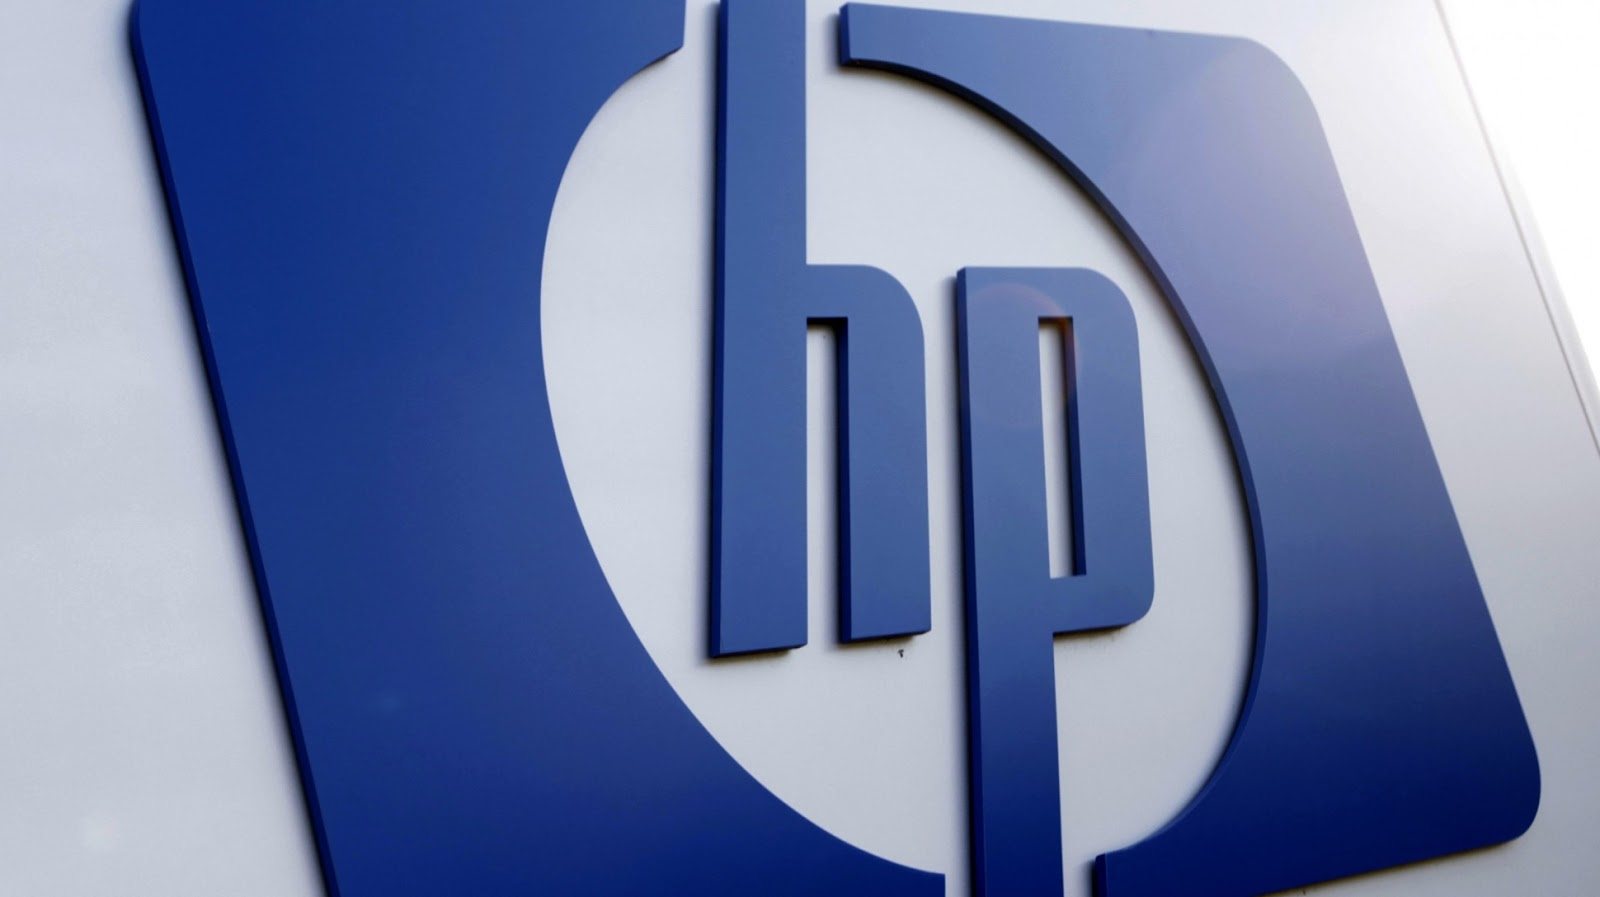 Hp Recruiting Freshers As Entry Level Systems Engineer At Bangalore